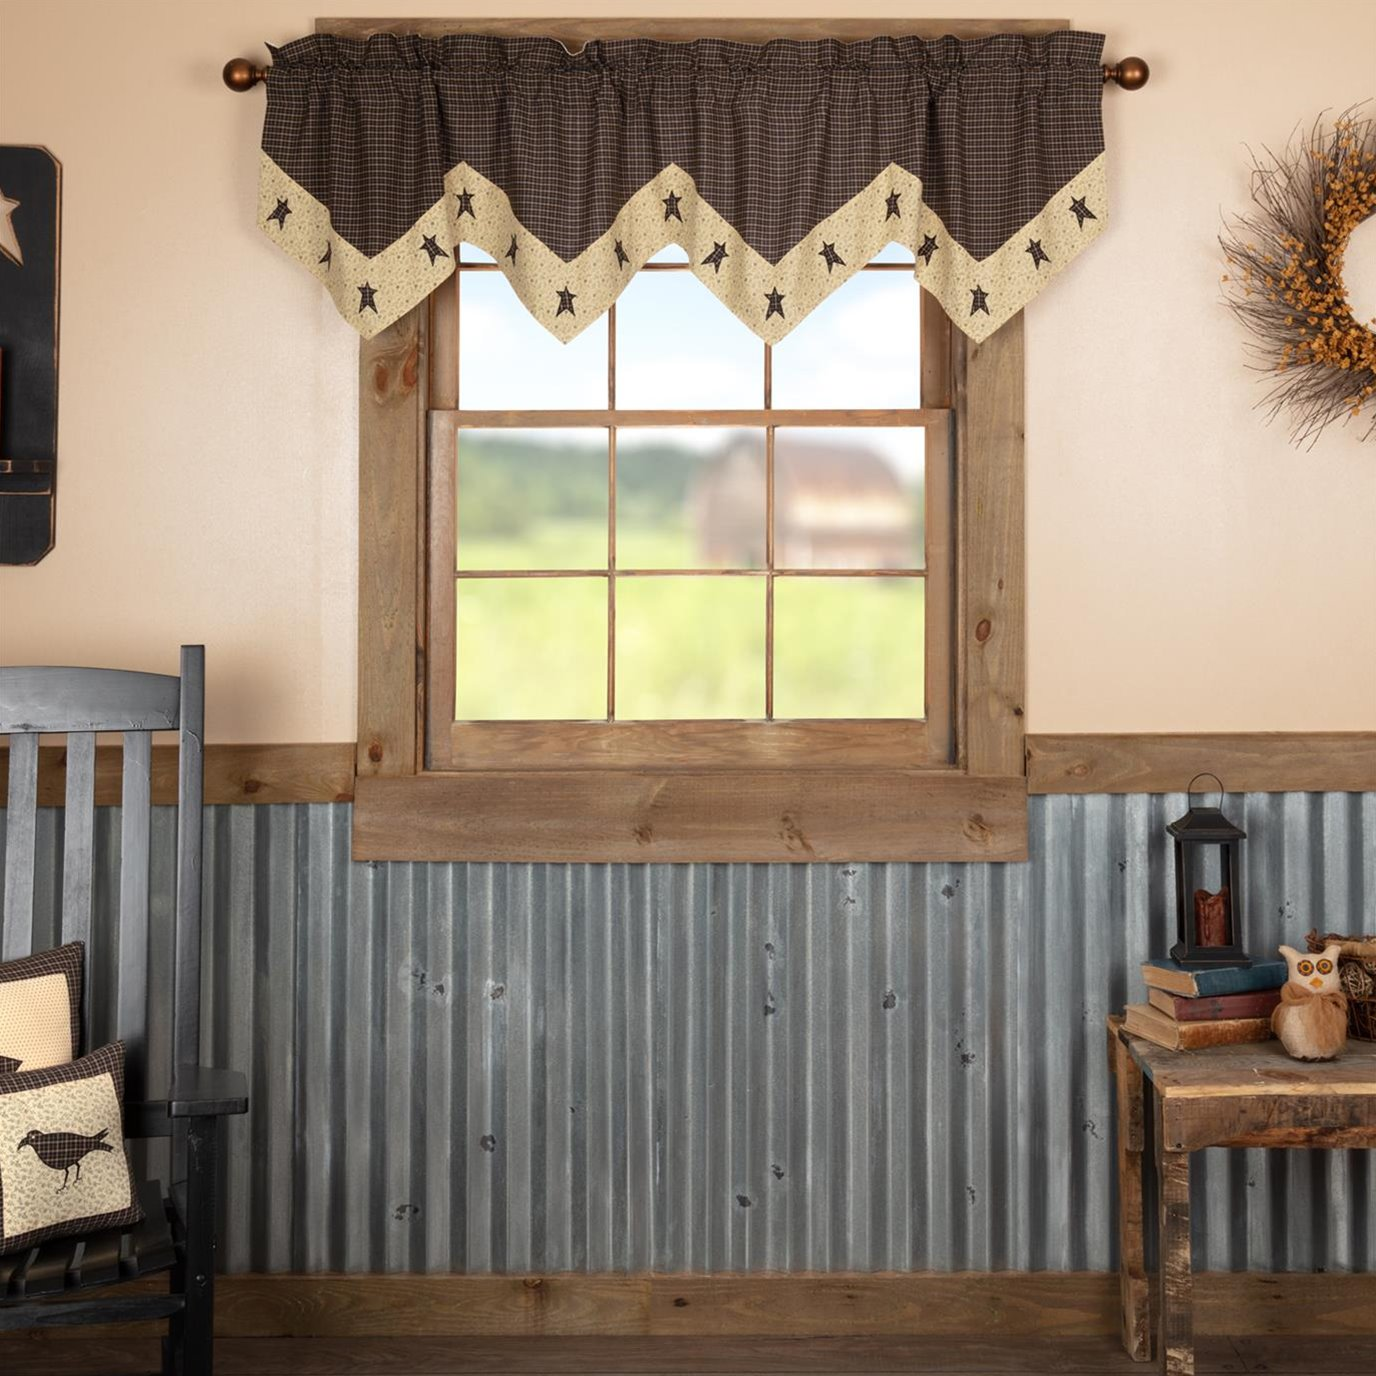 Kettle Grove Star Valance 20x72